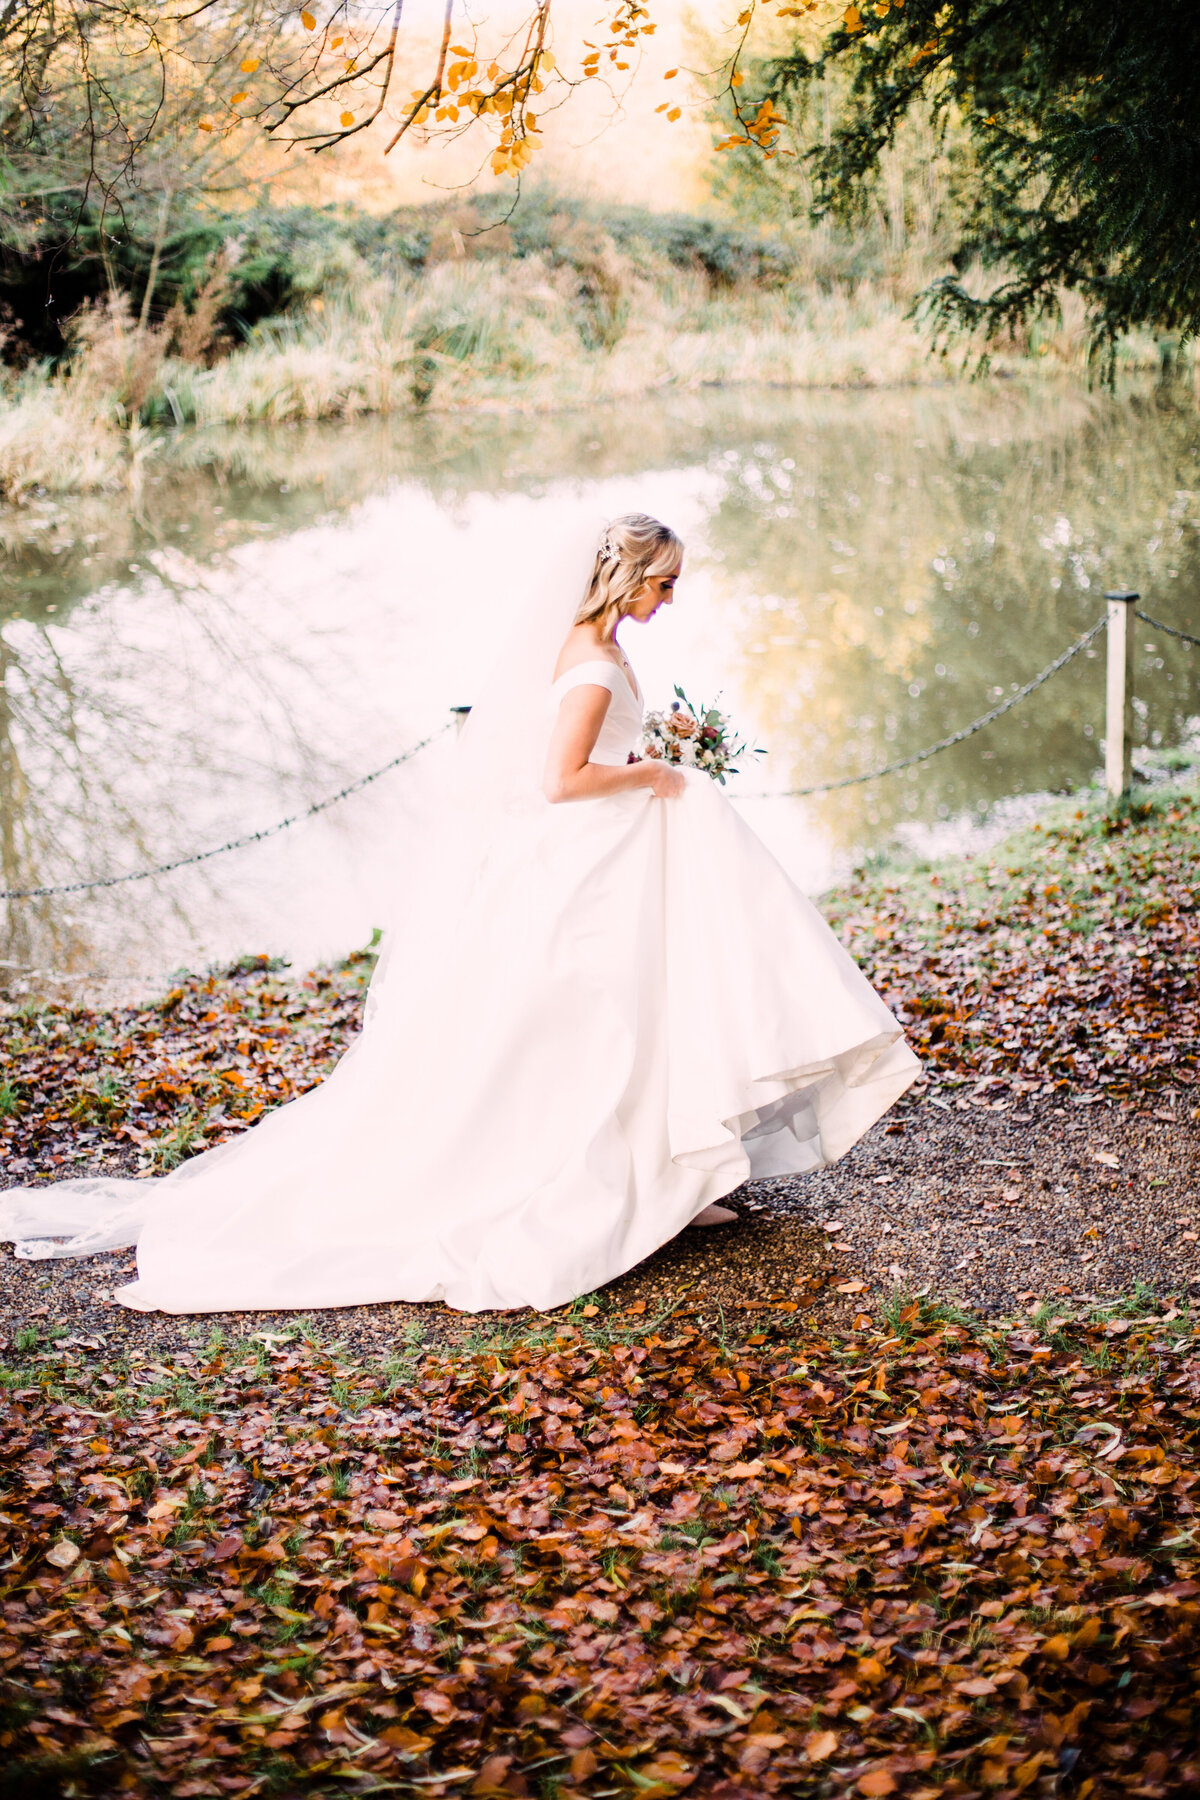 tabithastarkphototyorkshireweddingphotographer-122